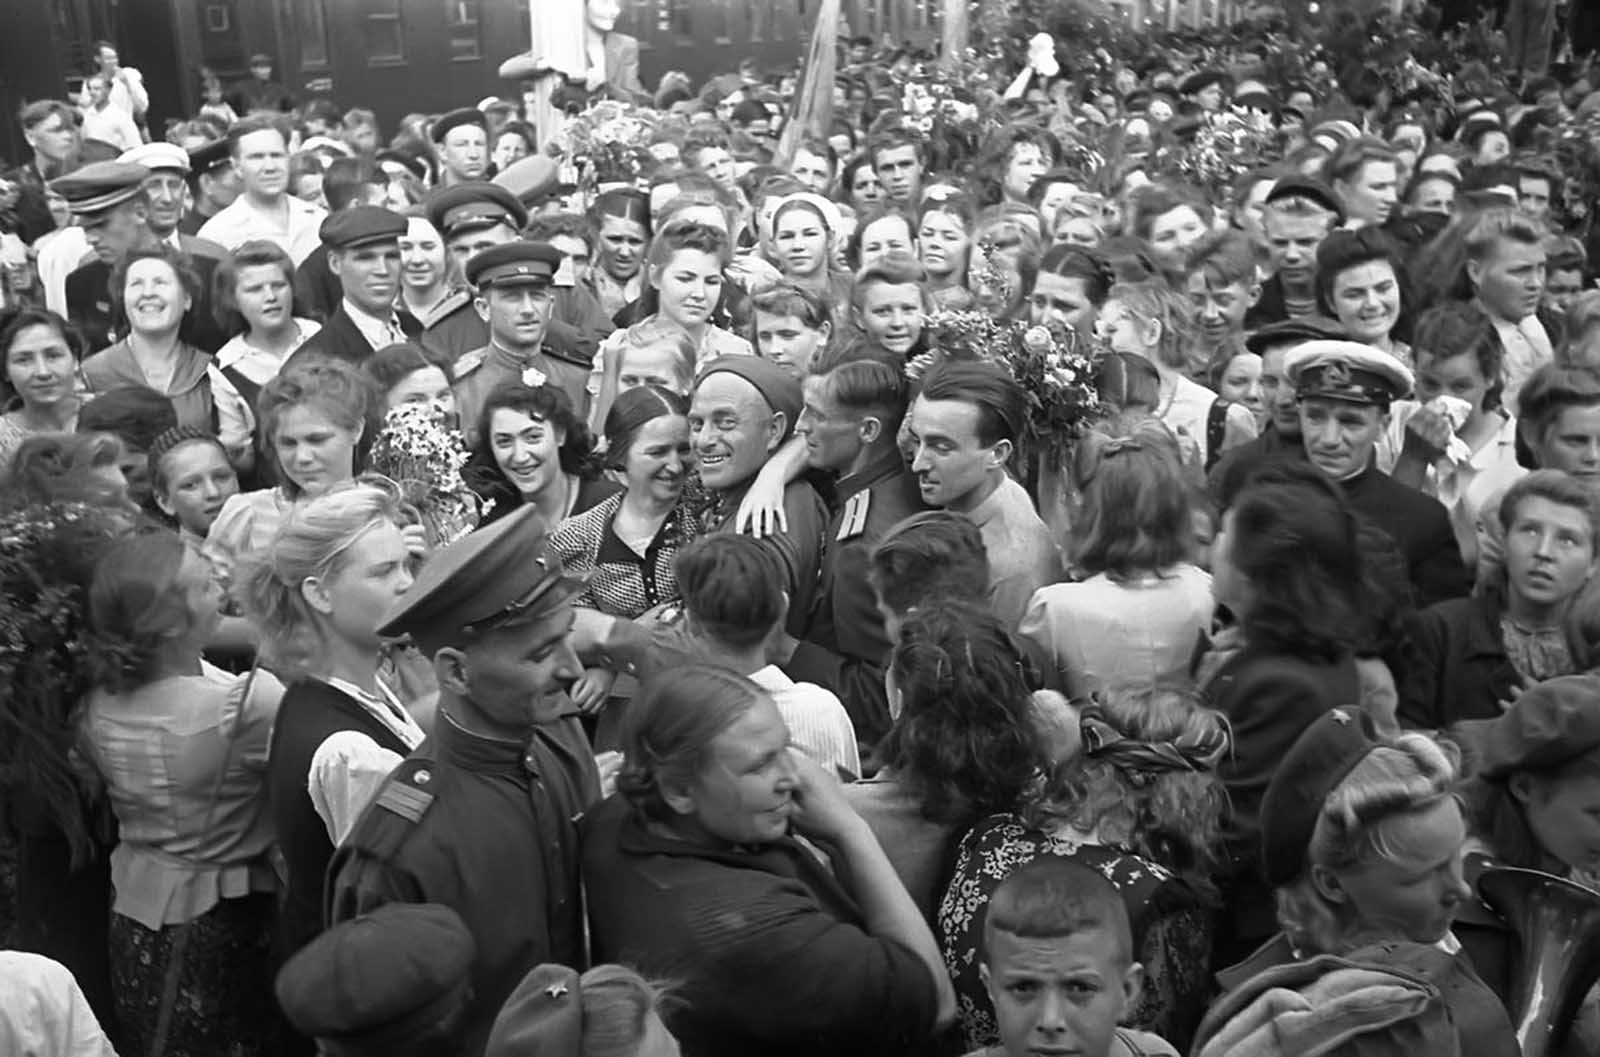 The return of victorious Soviet soldiers at a railway station in Moscow in 1945.